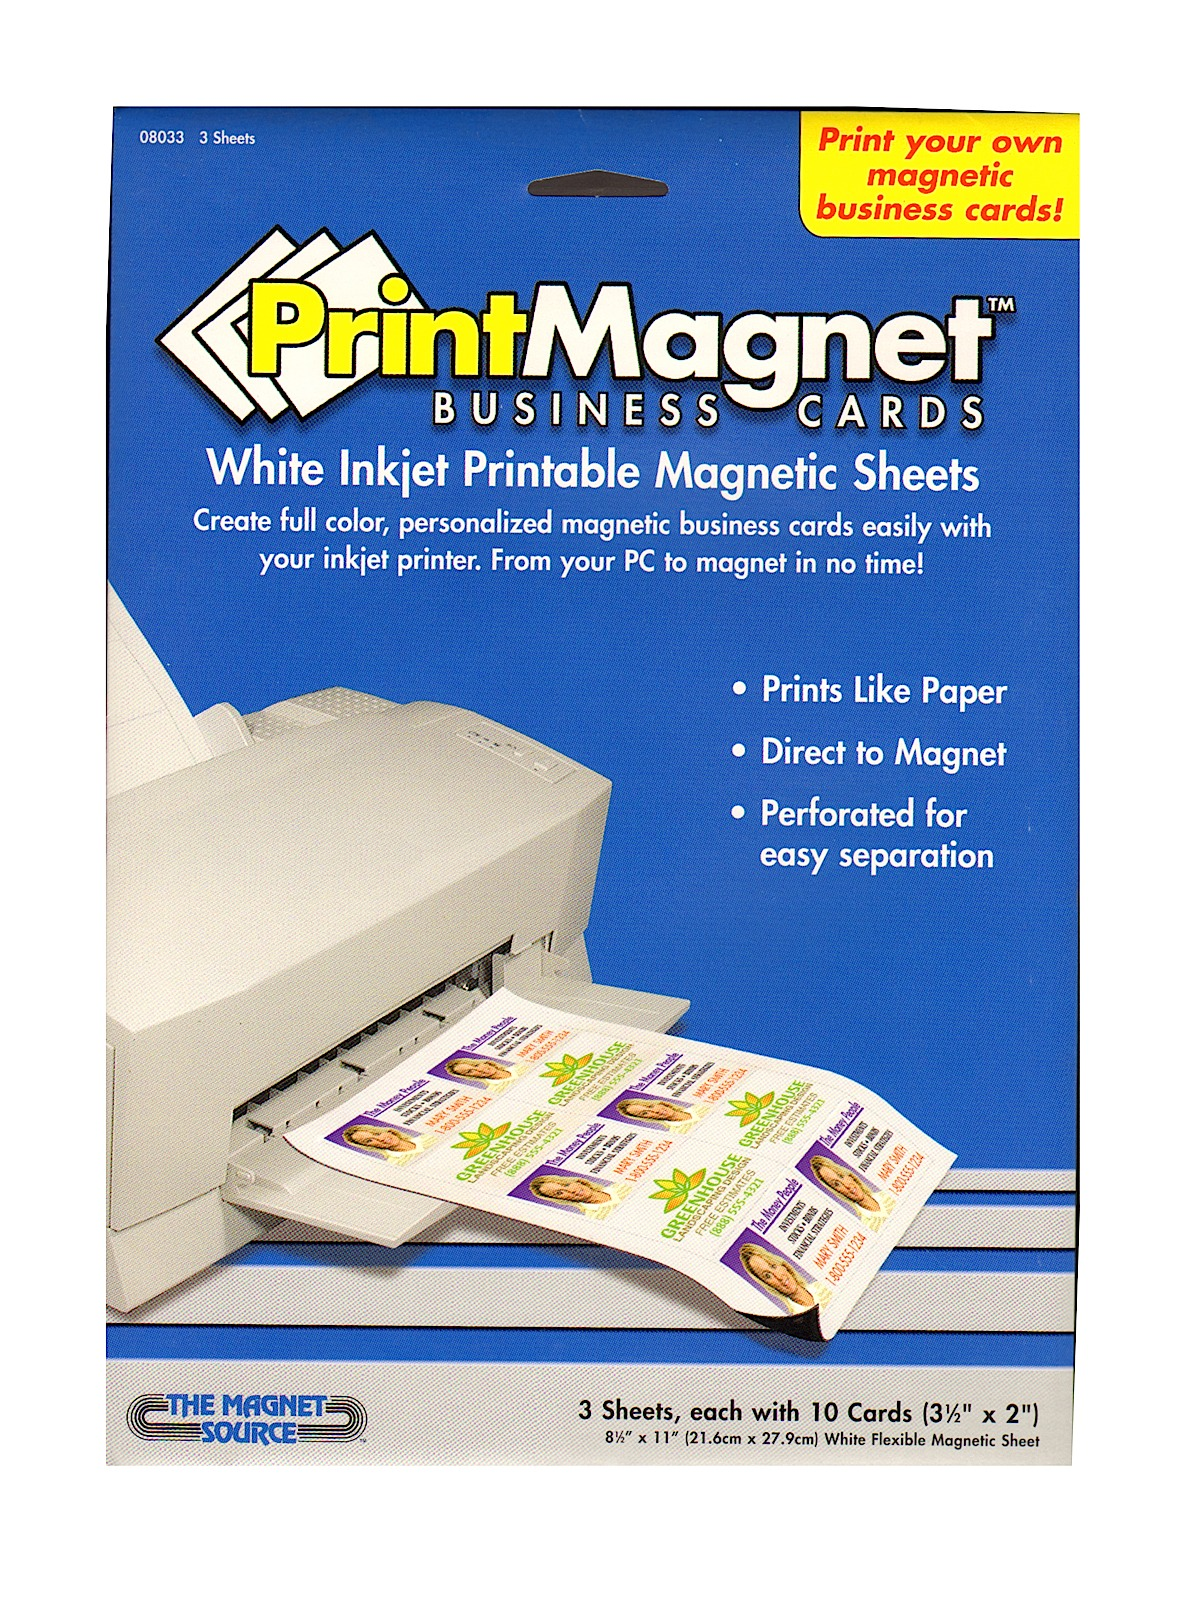 graphic about Printable Magnetic Sheets called The Magnet Resource Printmagnet Inkjet Printable Magnetic